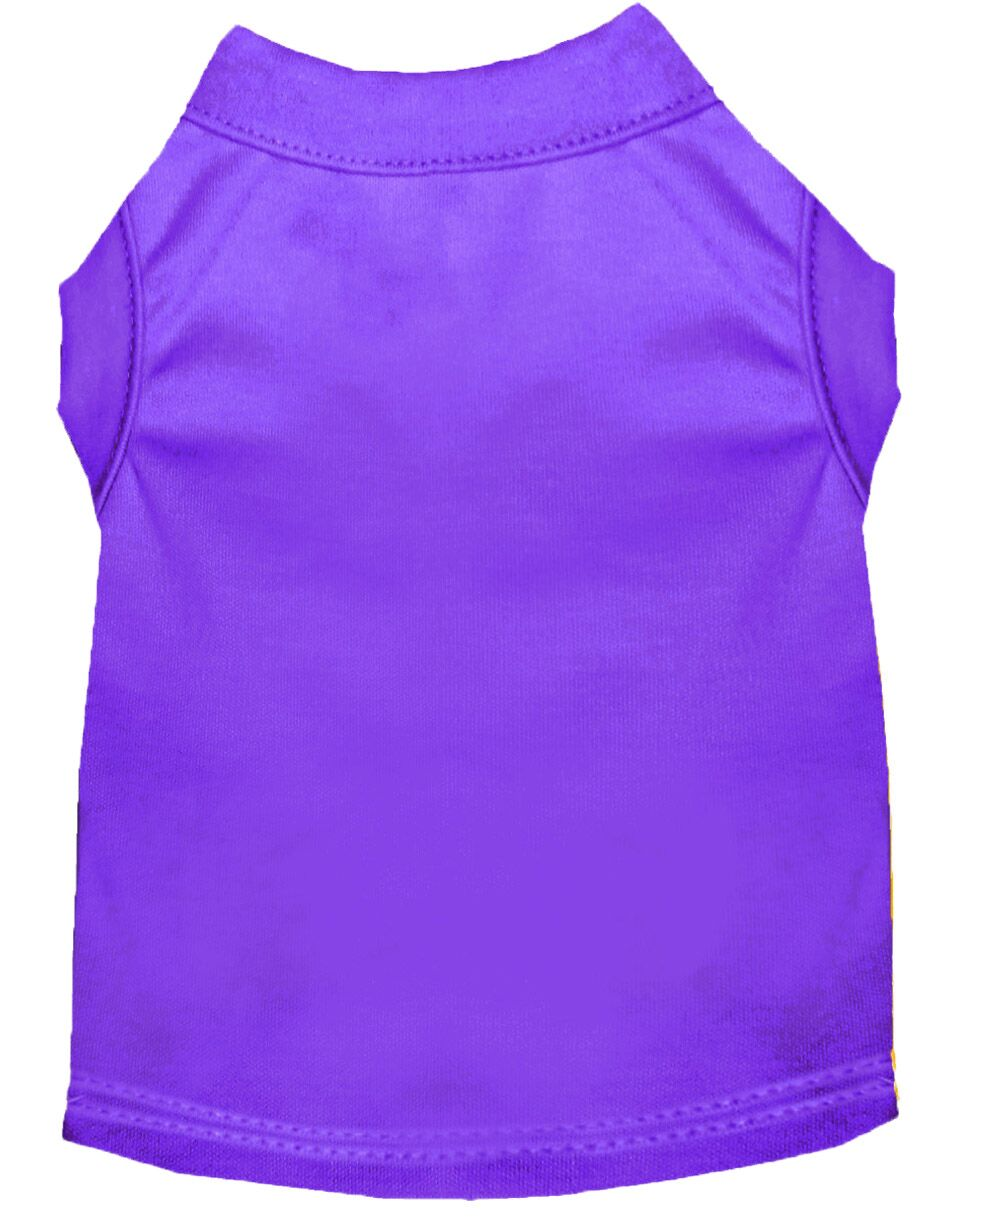 Plain Dog Shirt Purple